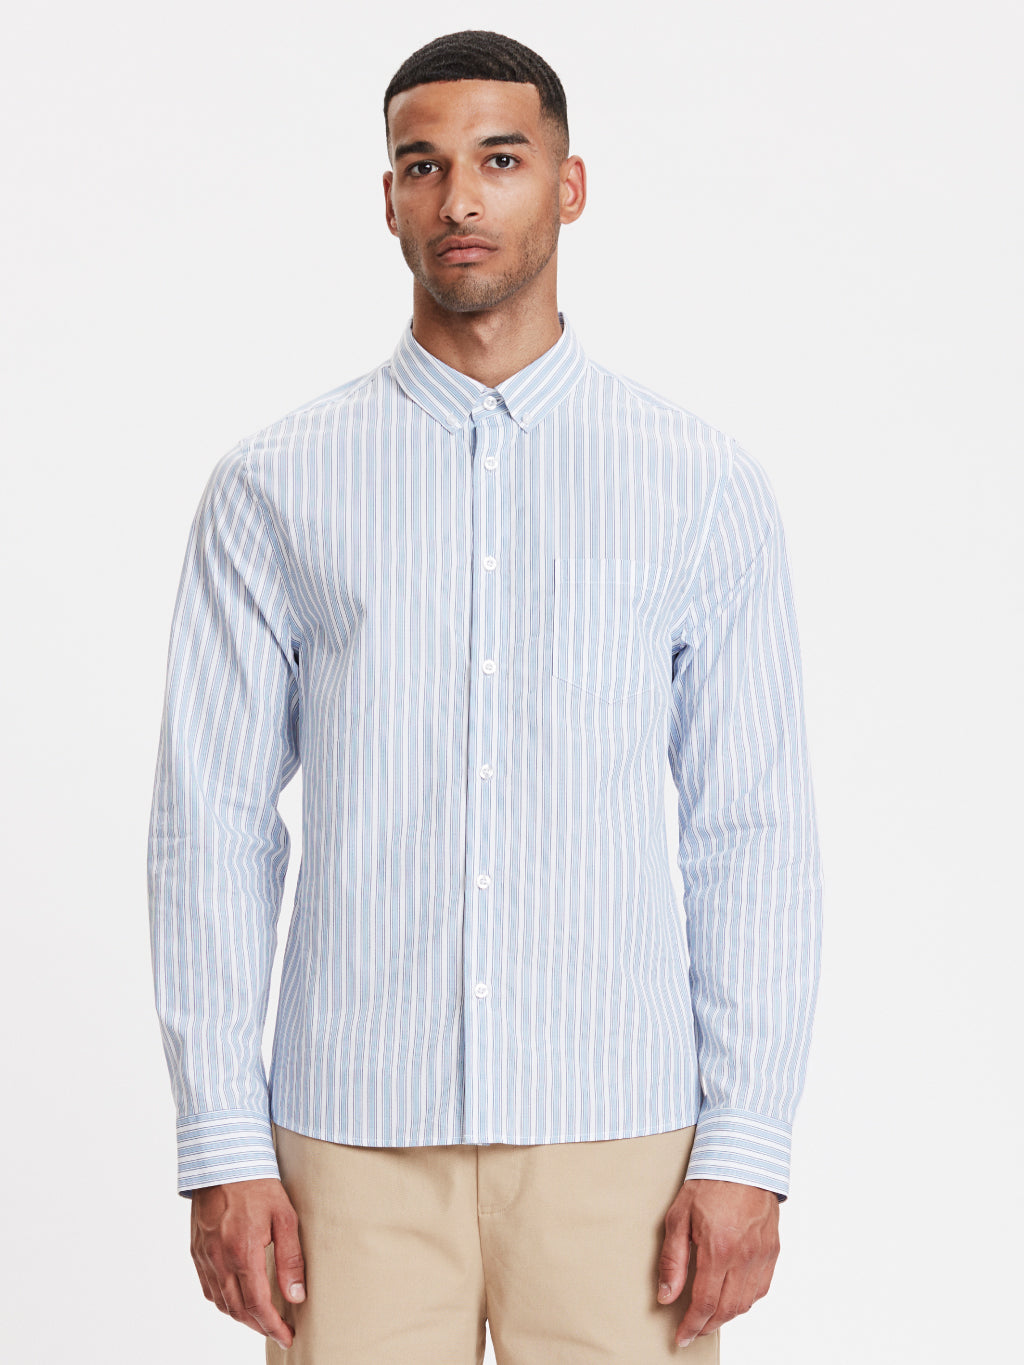 Lagos Shirt | Light Blue Striped